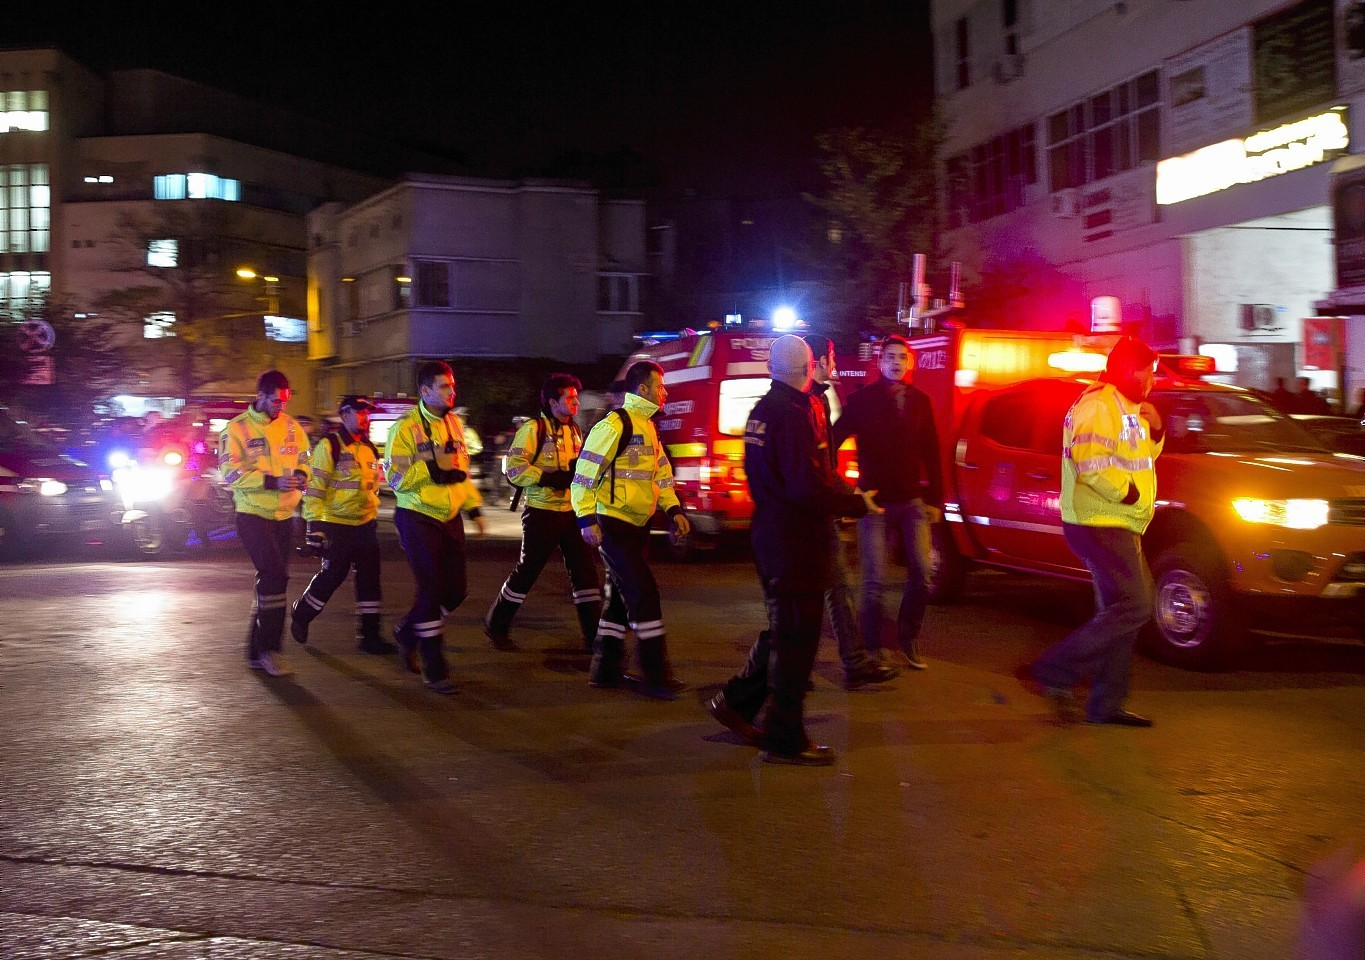 Emergency workers walk outside the scene of an explosion that occurred in a club in Bucharest